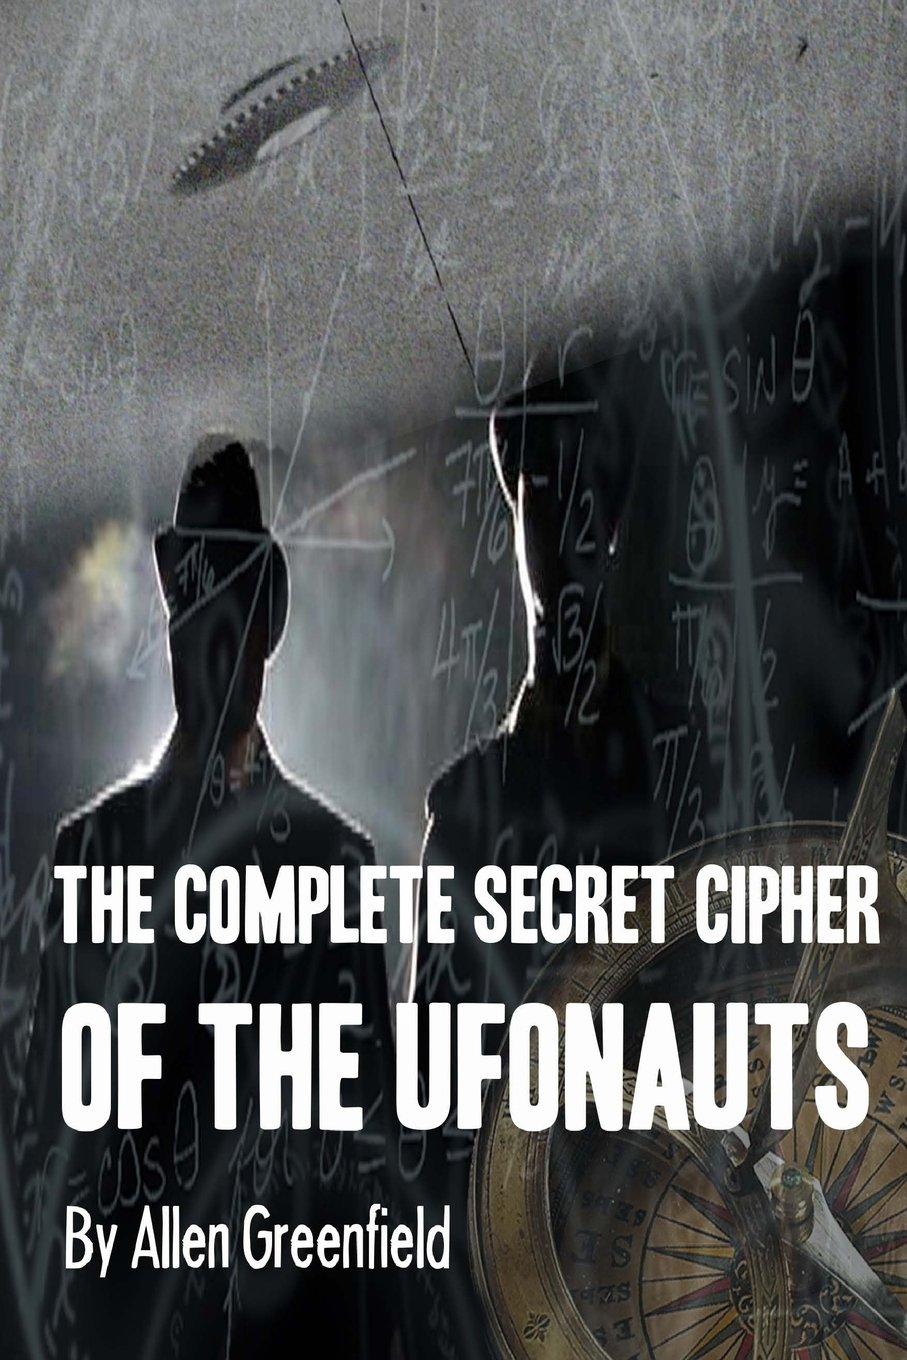 The Complete Secret Cypher of the Ufonauts